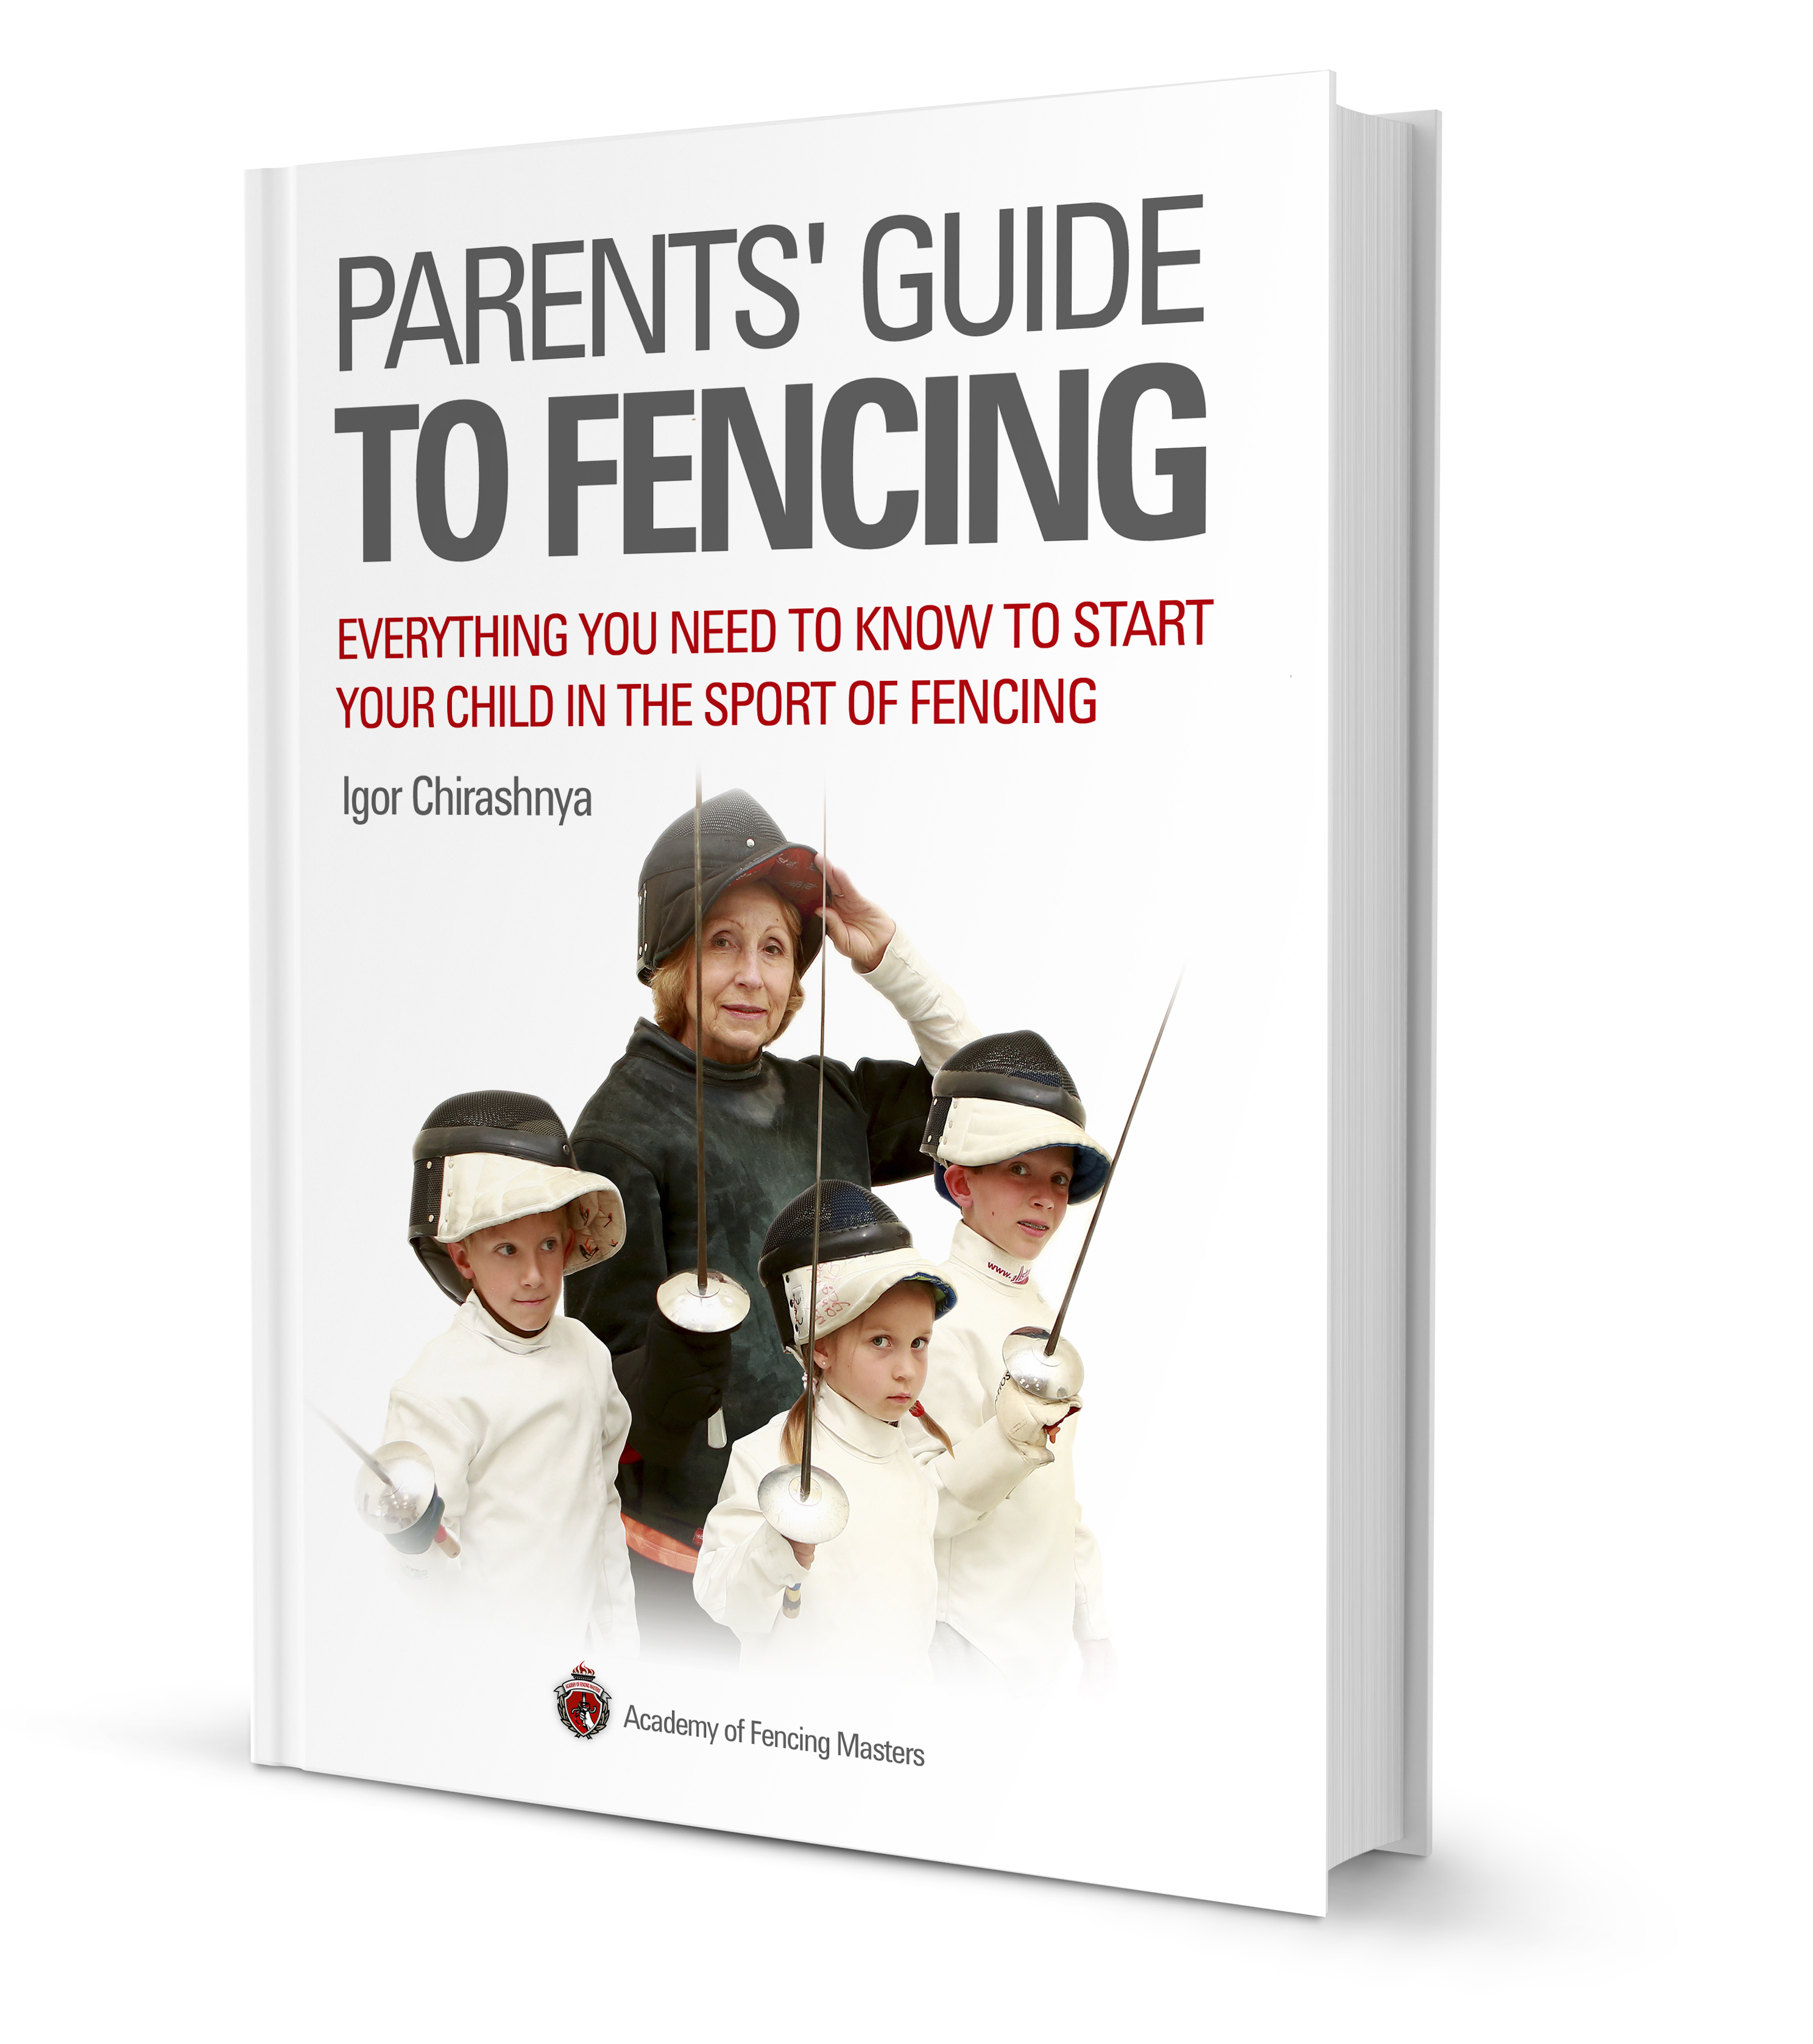 summer nationals tips packing your fencing gear for air